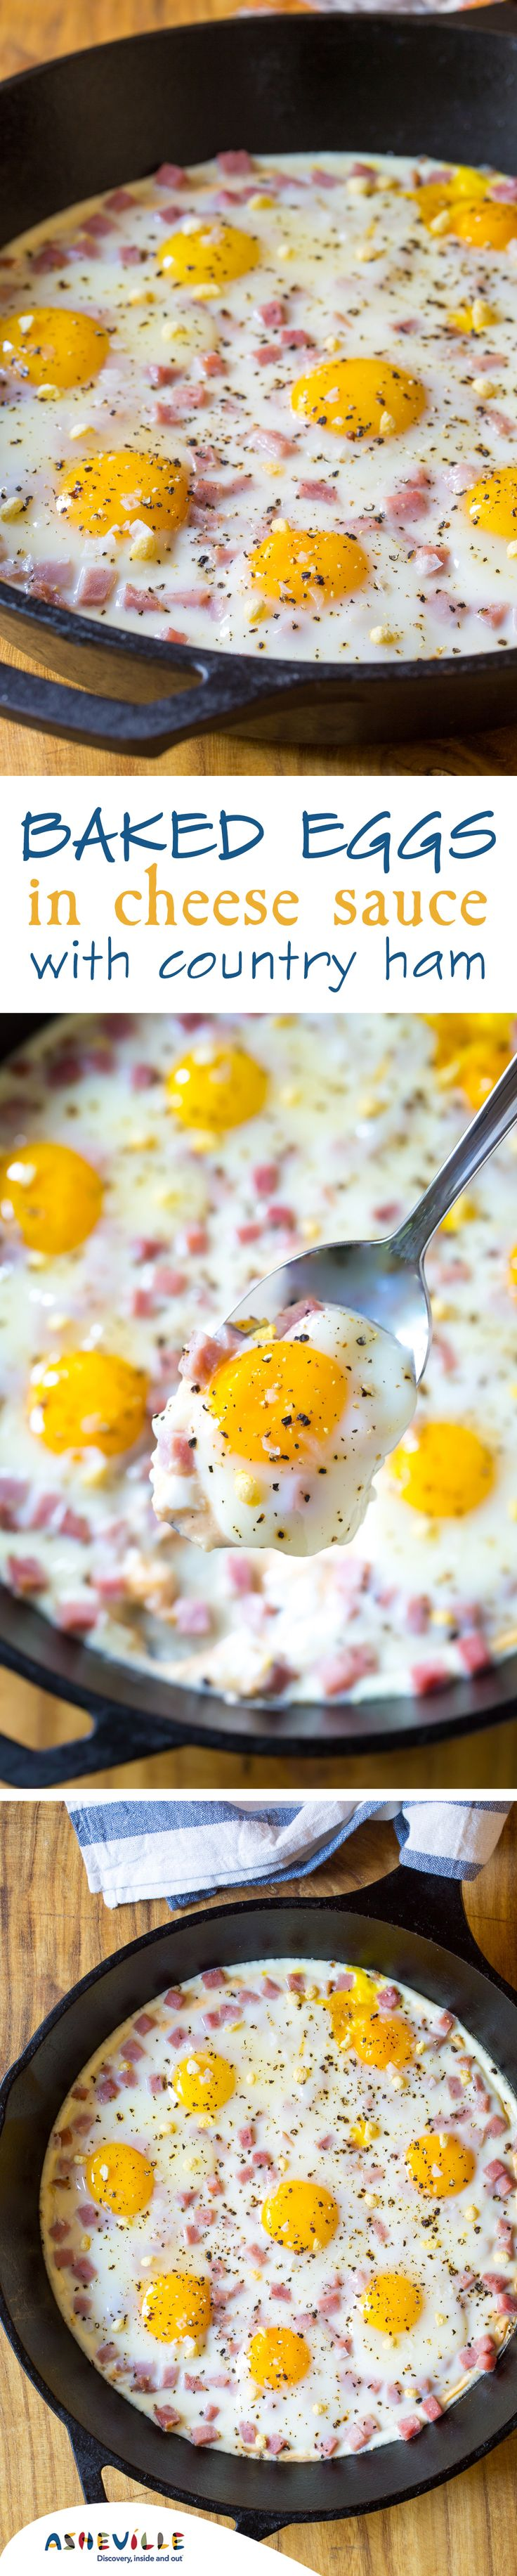 Baked Eggs in Cheese Sauce with Country Ham and Rice Krispies Recipe. An impressive, comfort-food breakfast dish to make for guests.